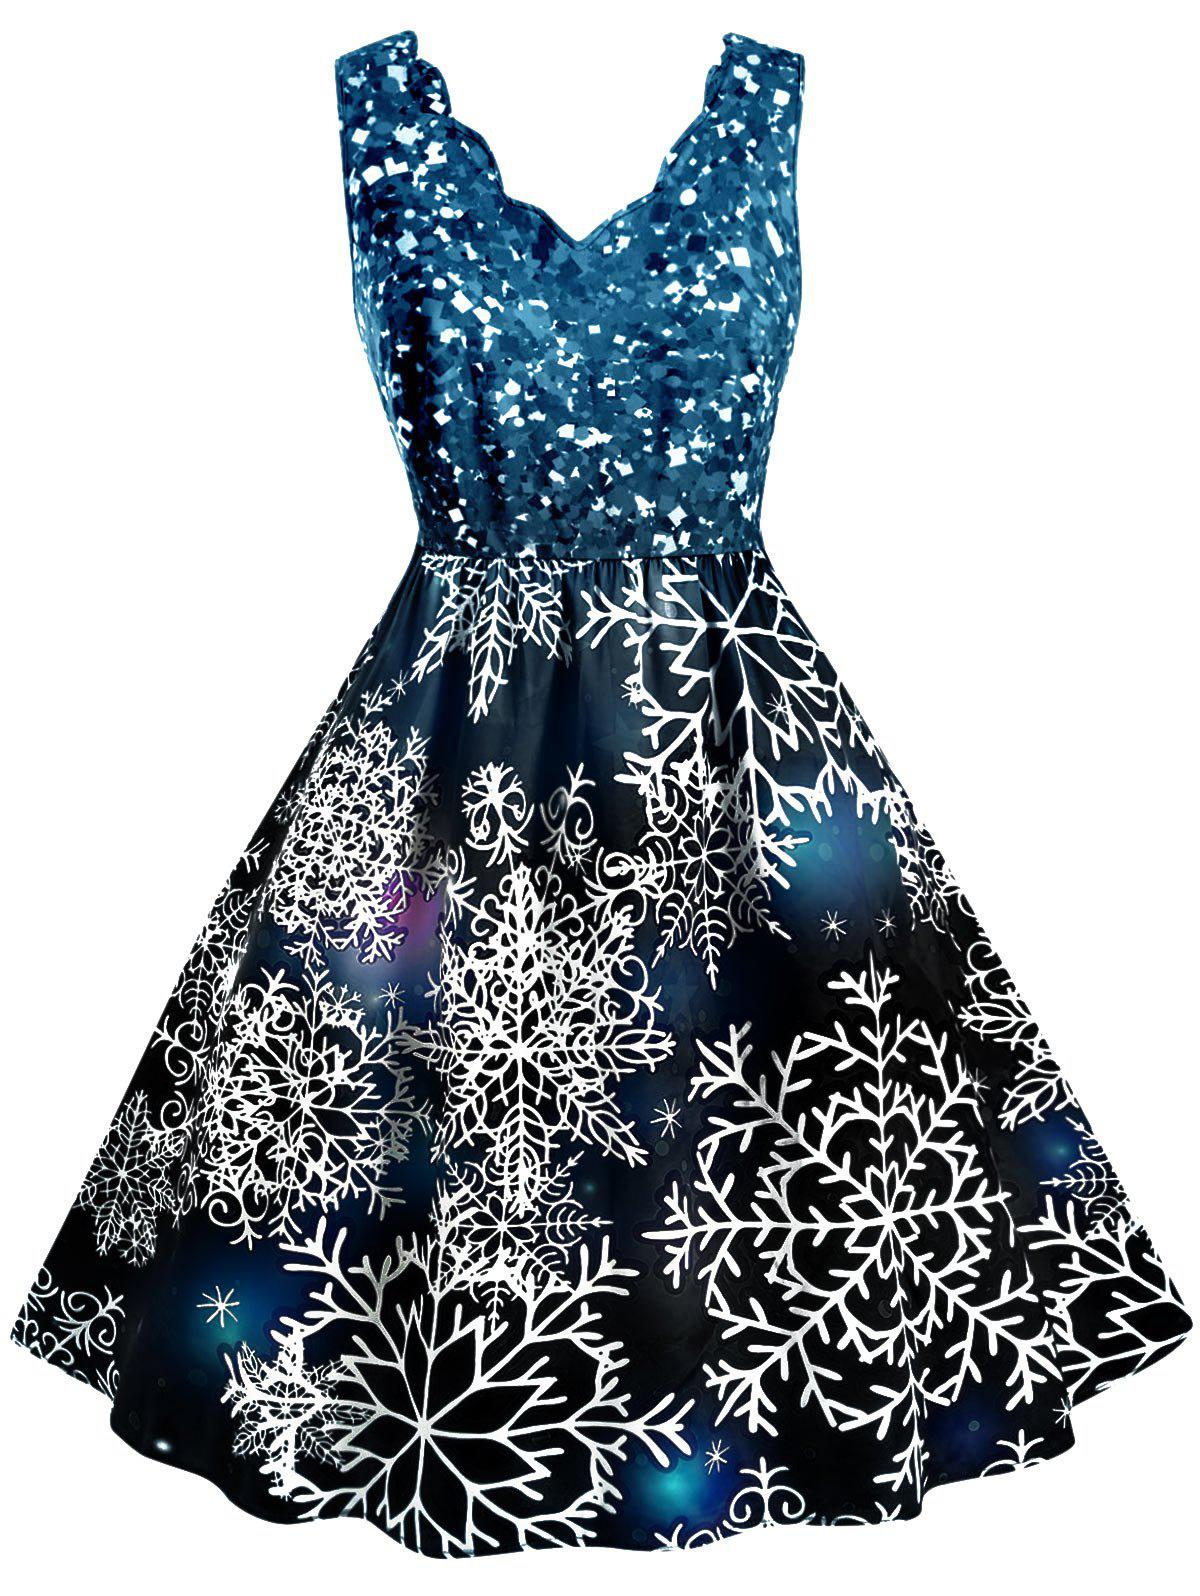 Scalloped Collar Snowflake Print Christmas Plus Size Dress Rosegal